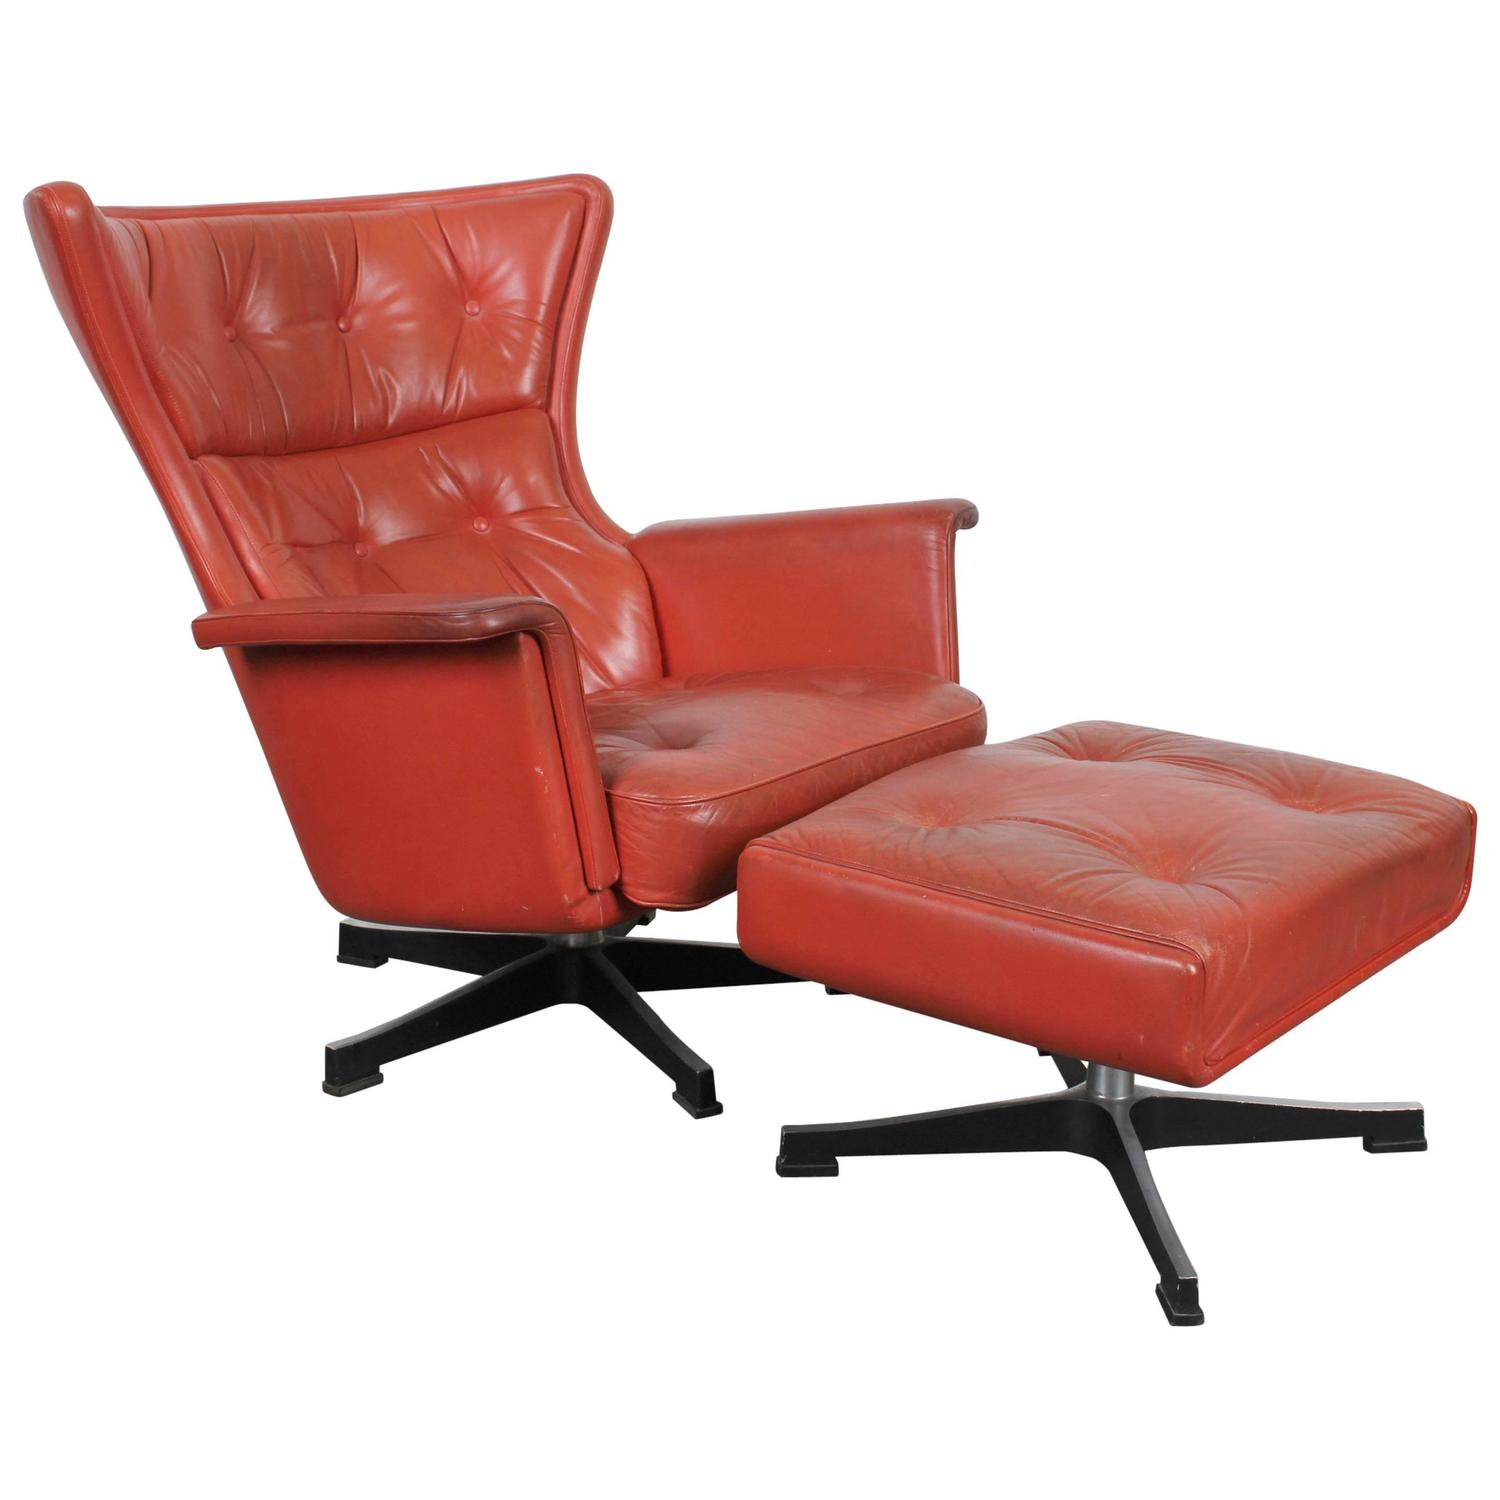 Mid century modern red leather swivel chair at 1stdibs for Mid century modern leather chairs